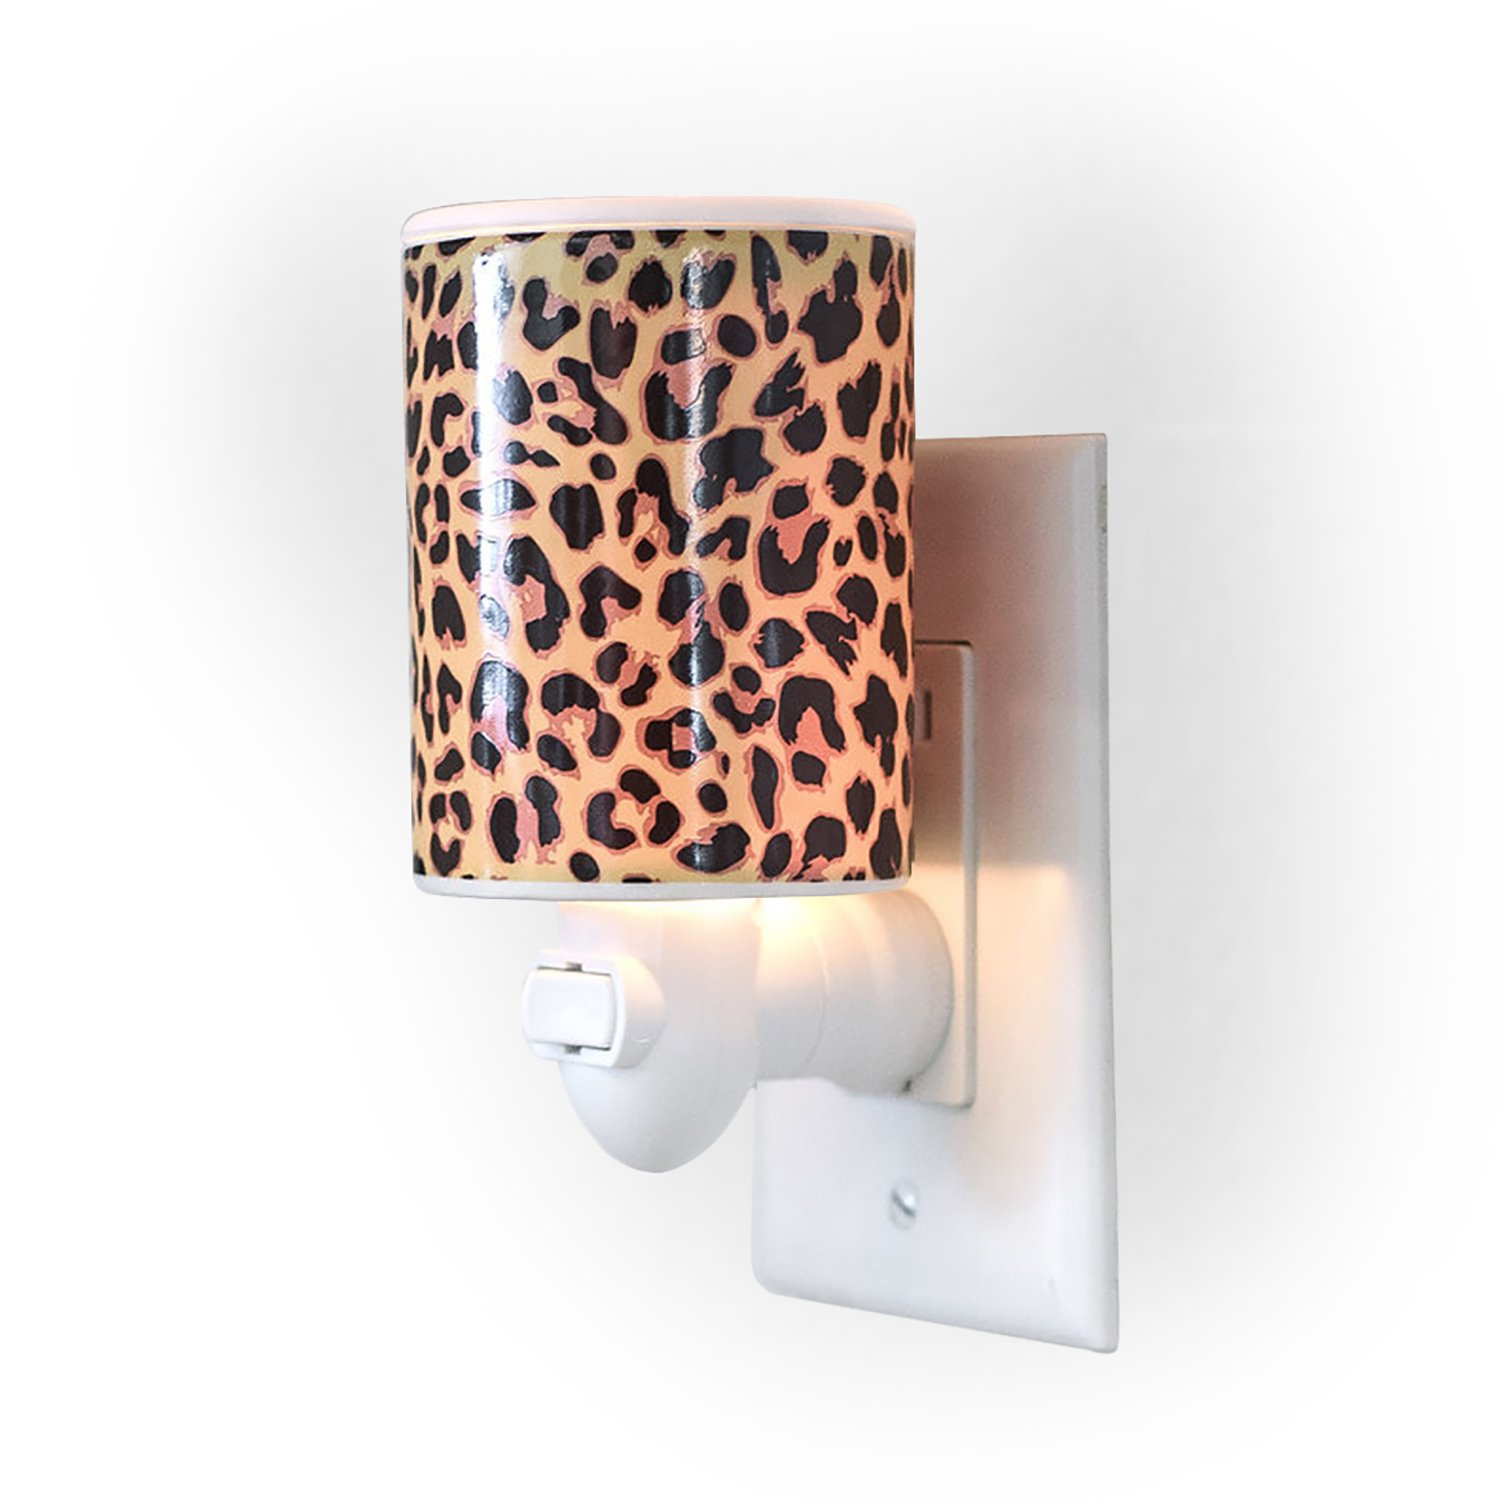 Happy Wax Outlet Wax Melt Warmer for Wax Melts, Tarts & Cubes - Ceramic Wax Melter with Patent Pending No Mess Silicone Top [Leopard Print]